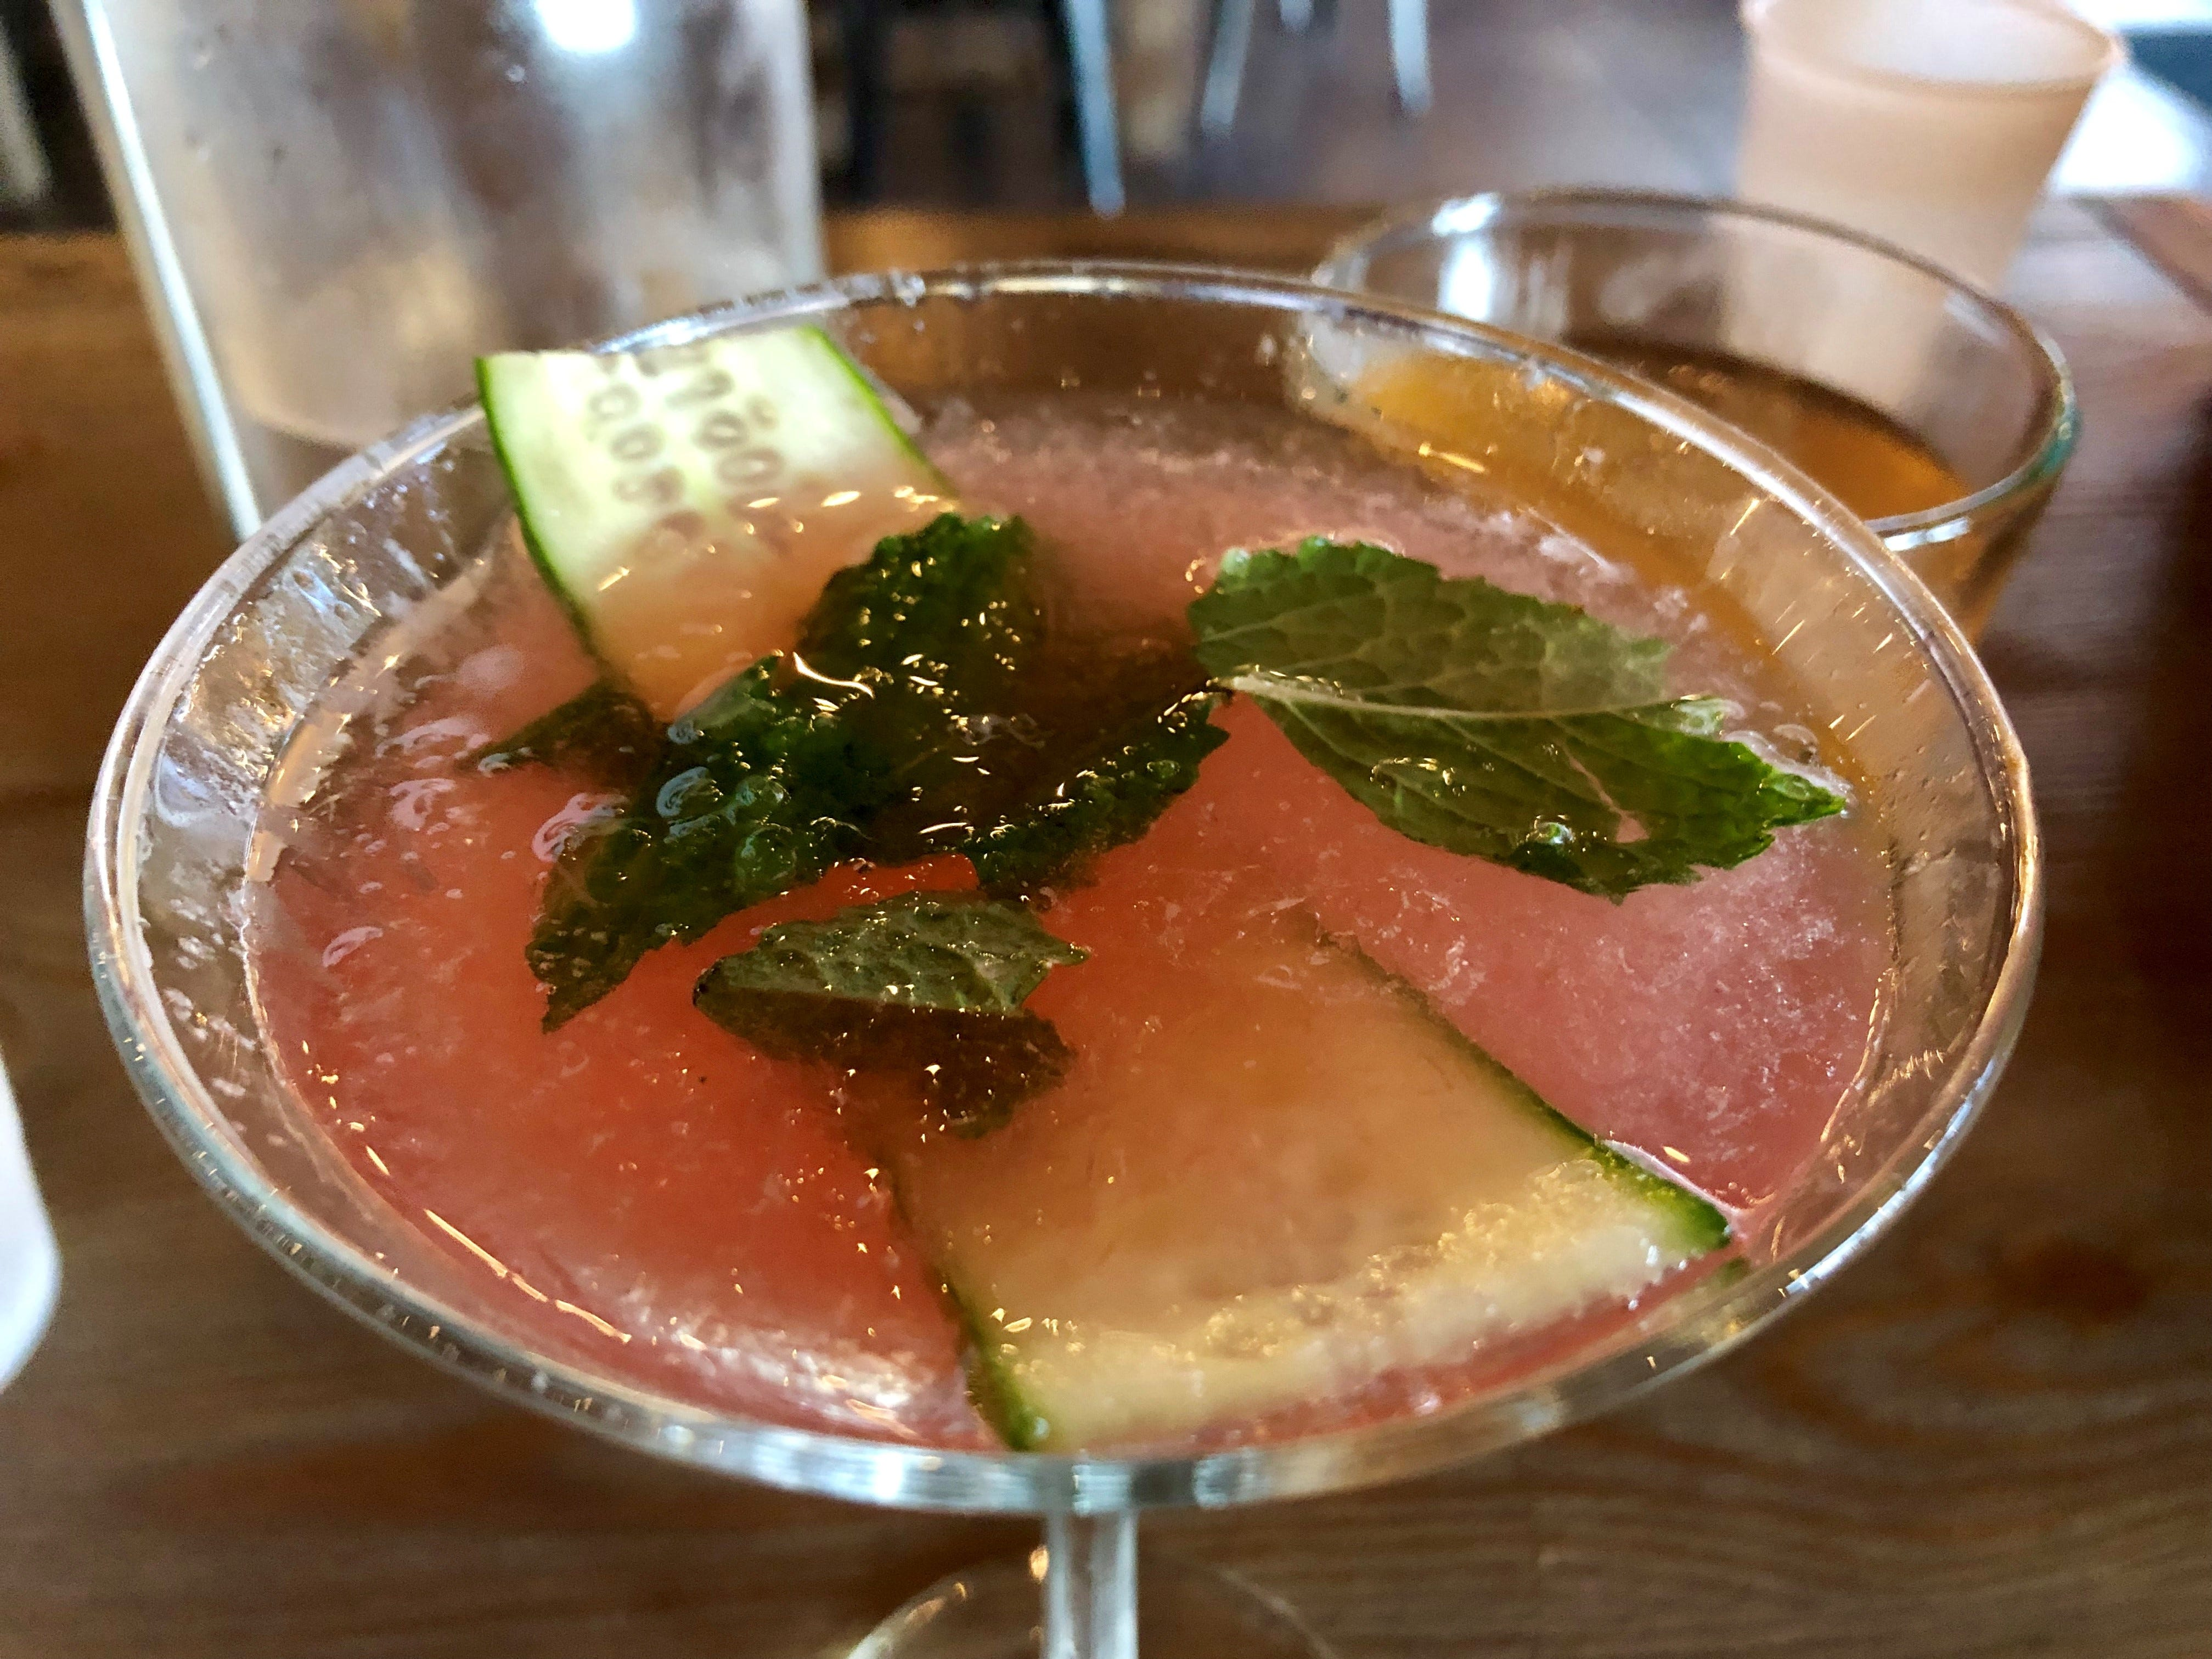 """Backyard Beer Garden's """"Other Side of the Pillow"""" cocktail is made with watermelon puree, cucumber vodka, mint, Triple Sec and fresh cucumber."""